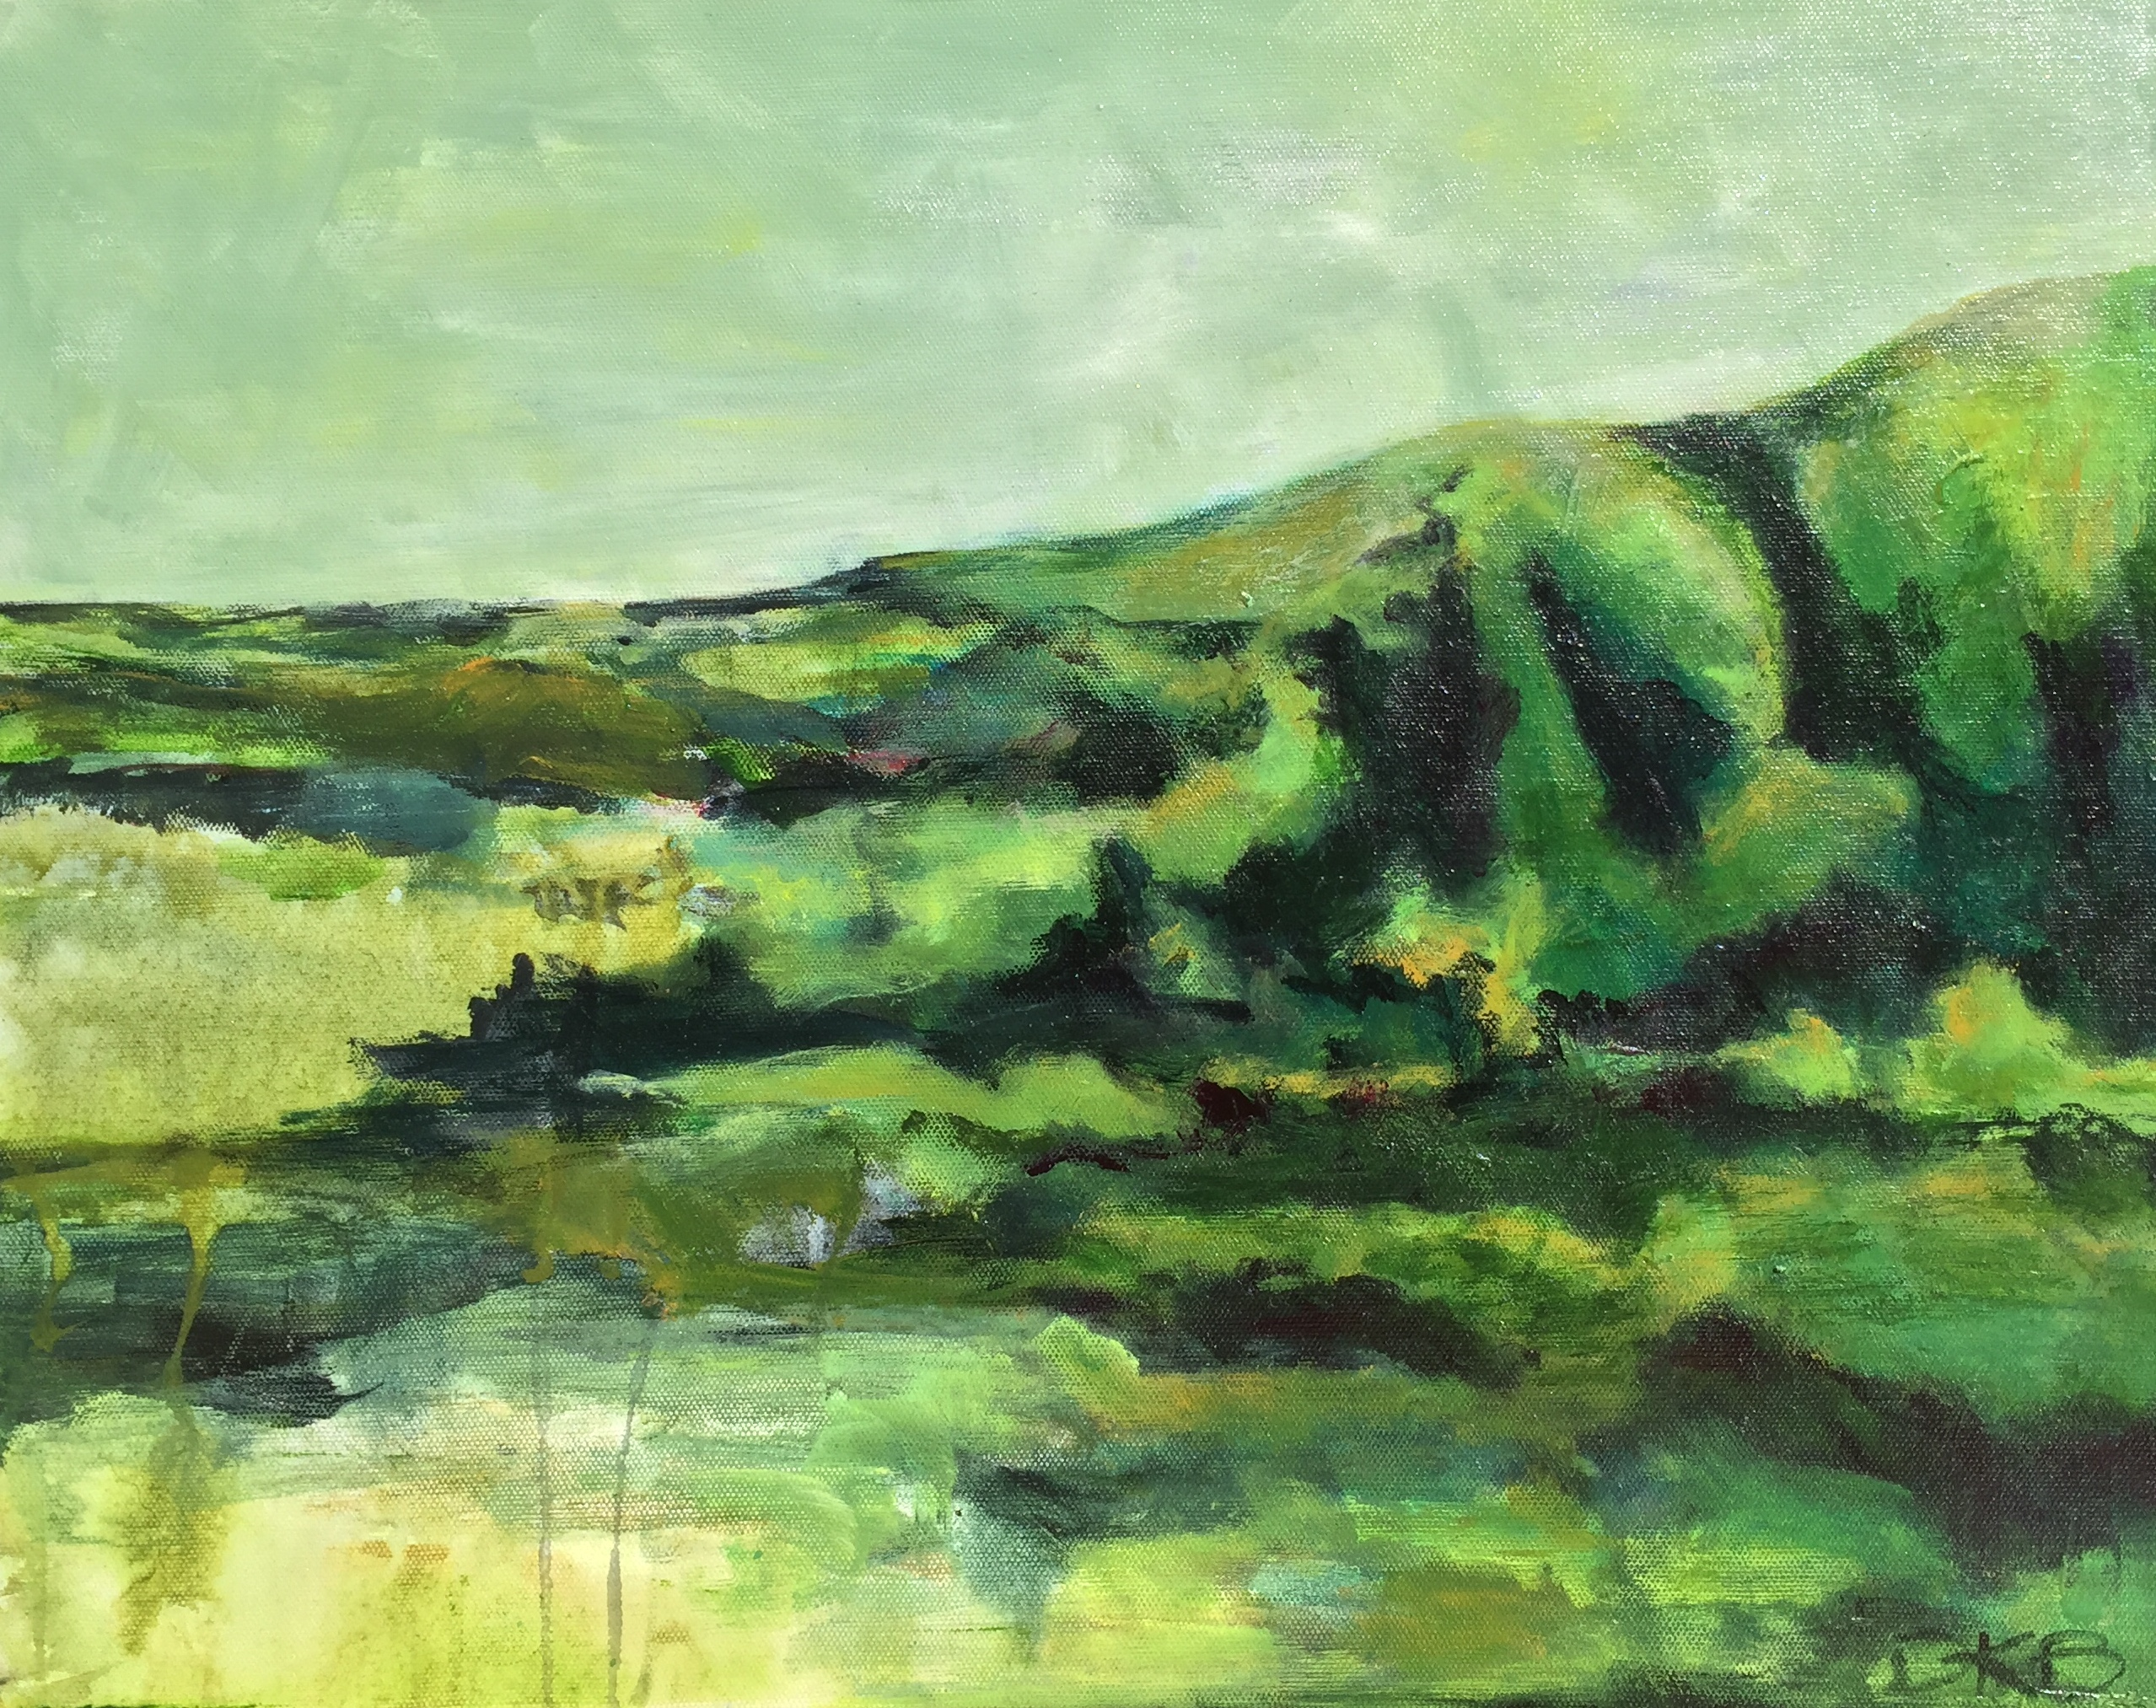 Aongatete Valley 2 